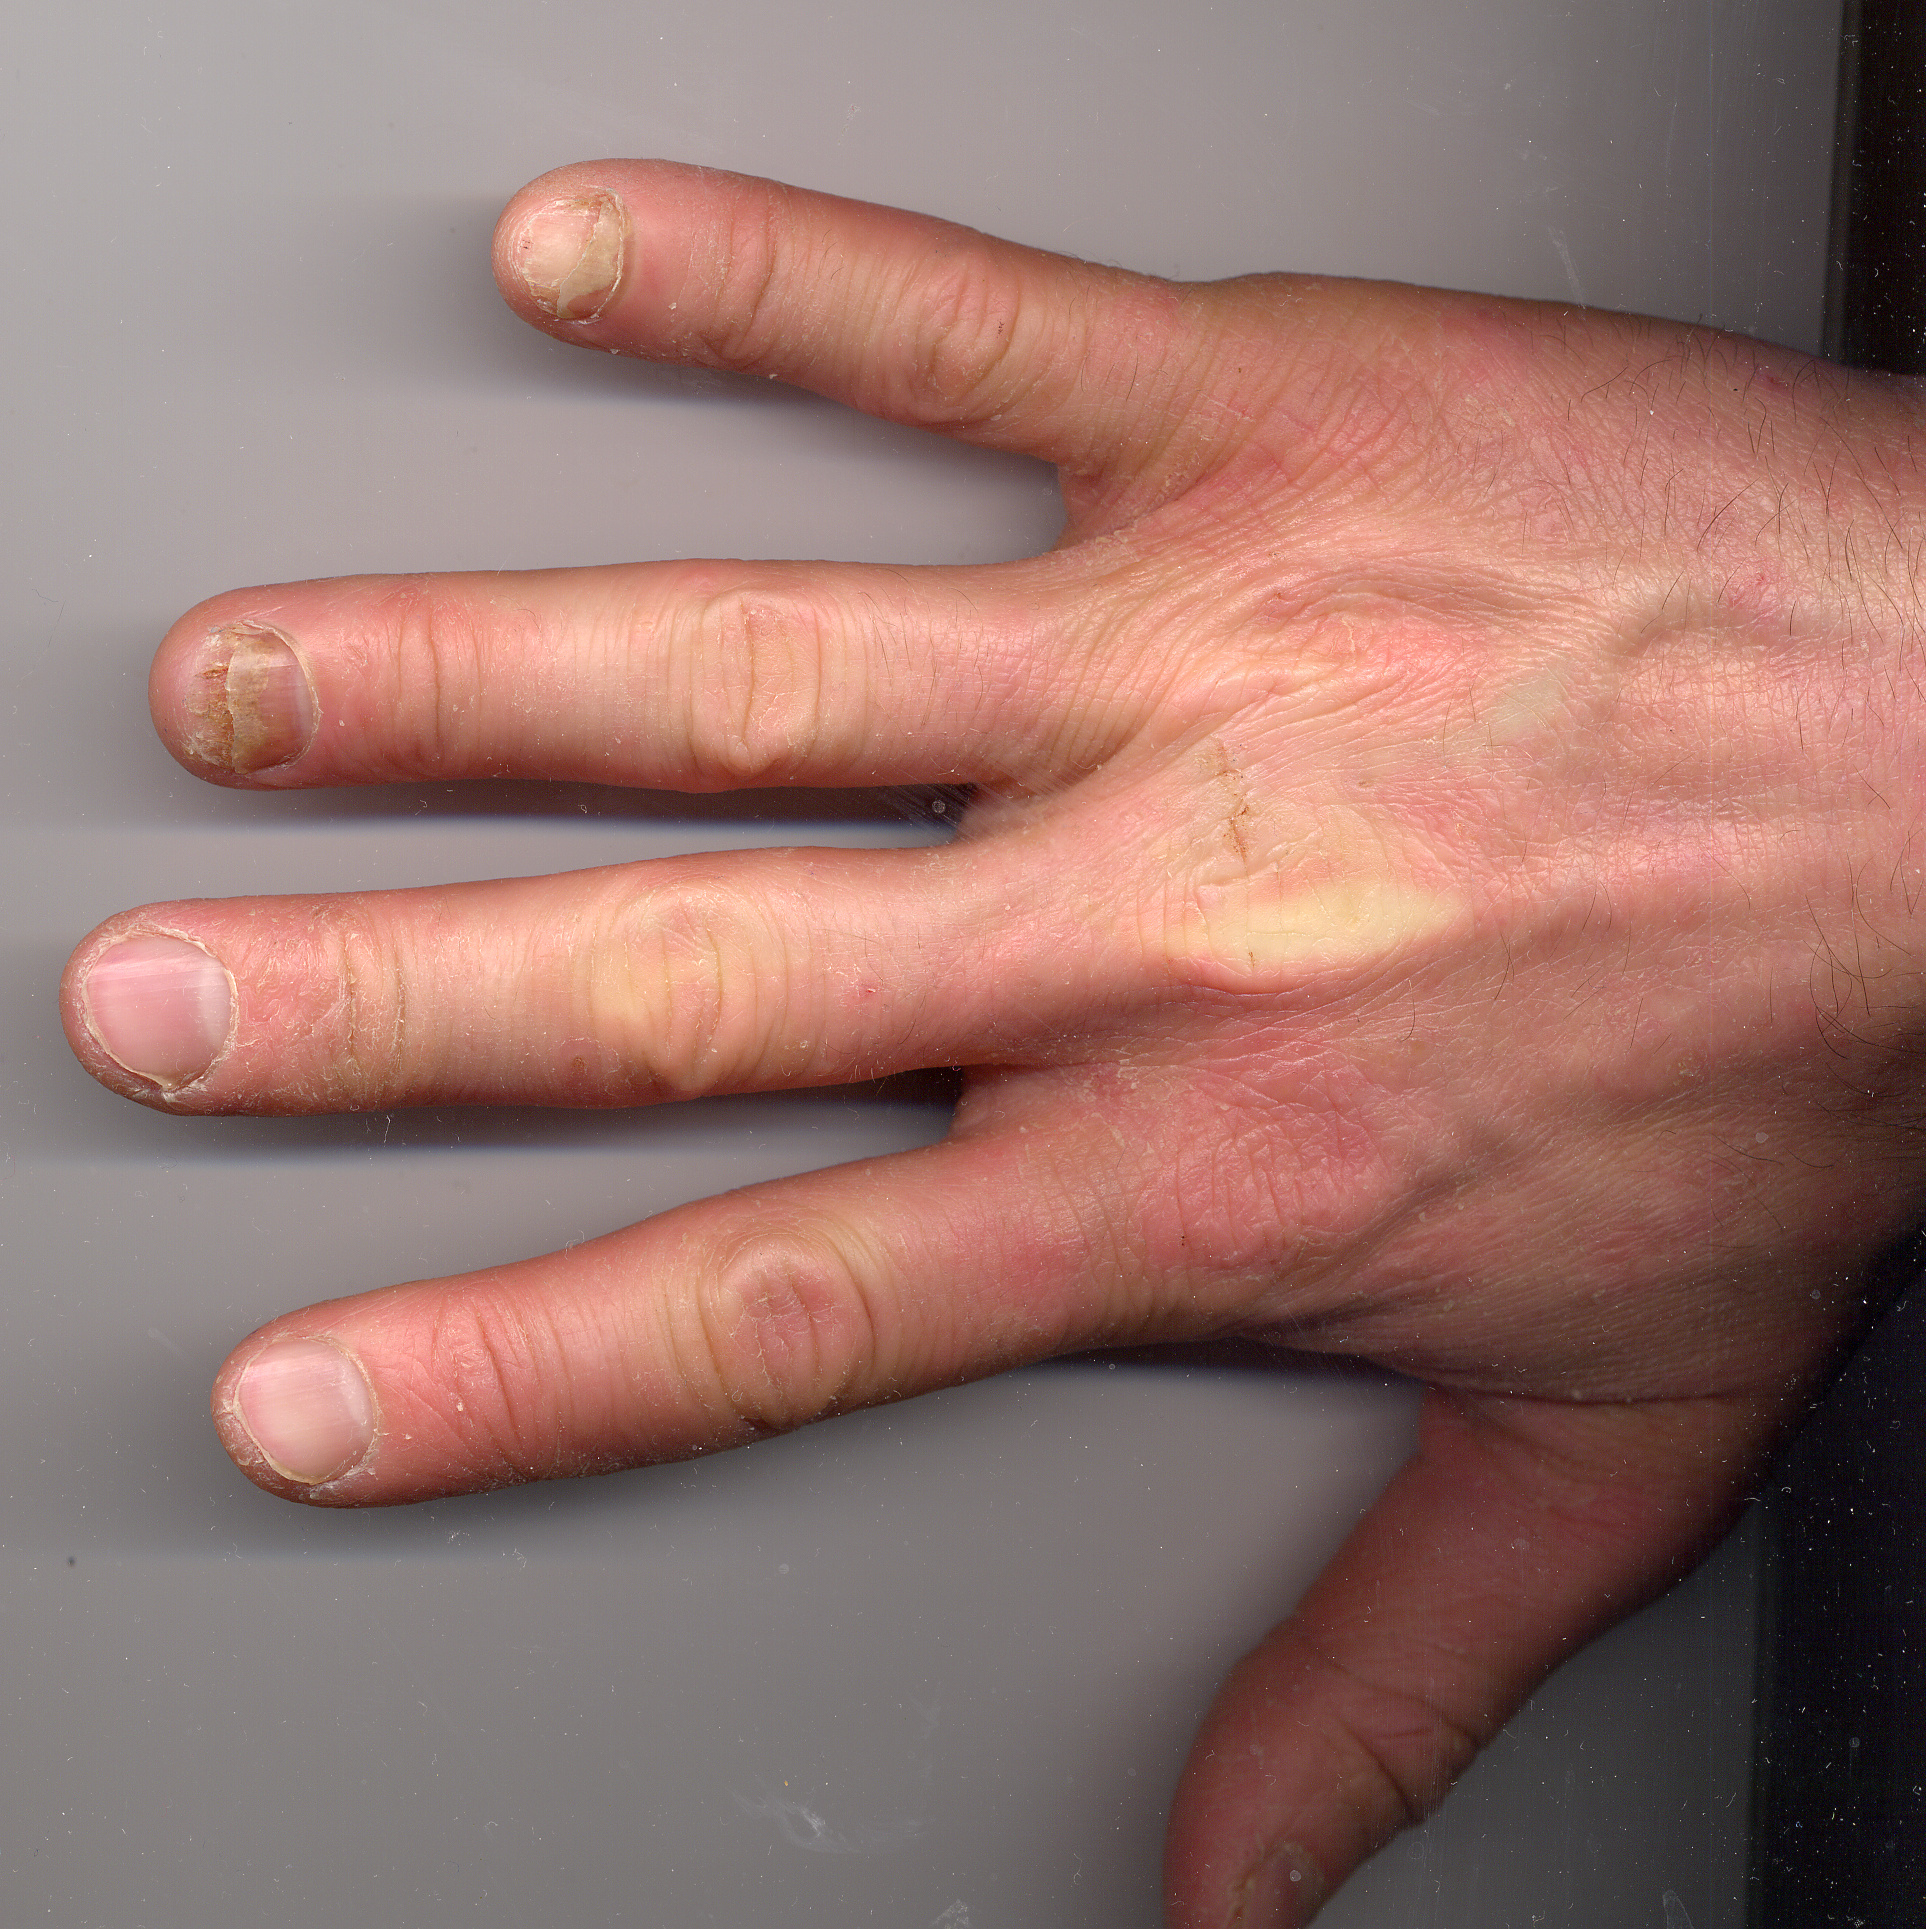 File:Onycholysis right hand 34yo male ring and little fingers non ...